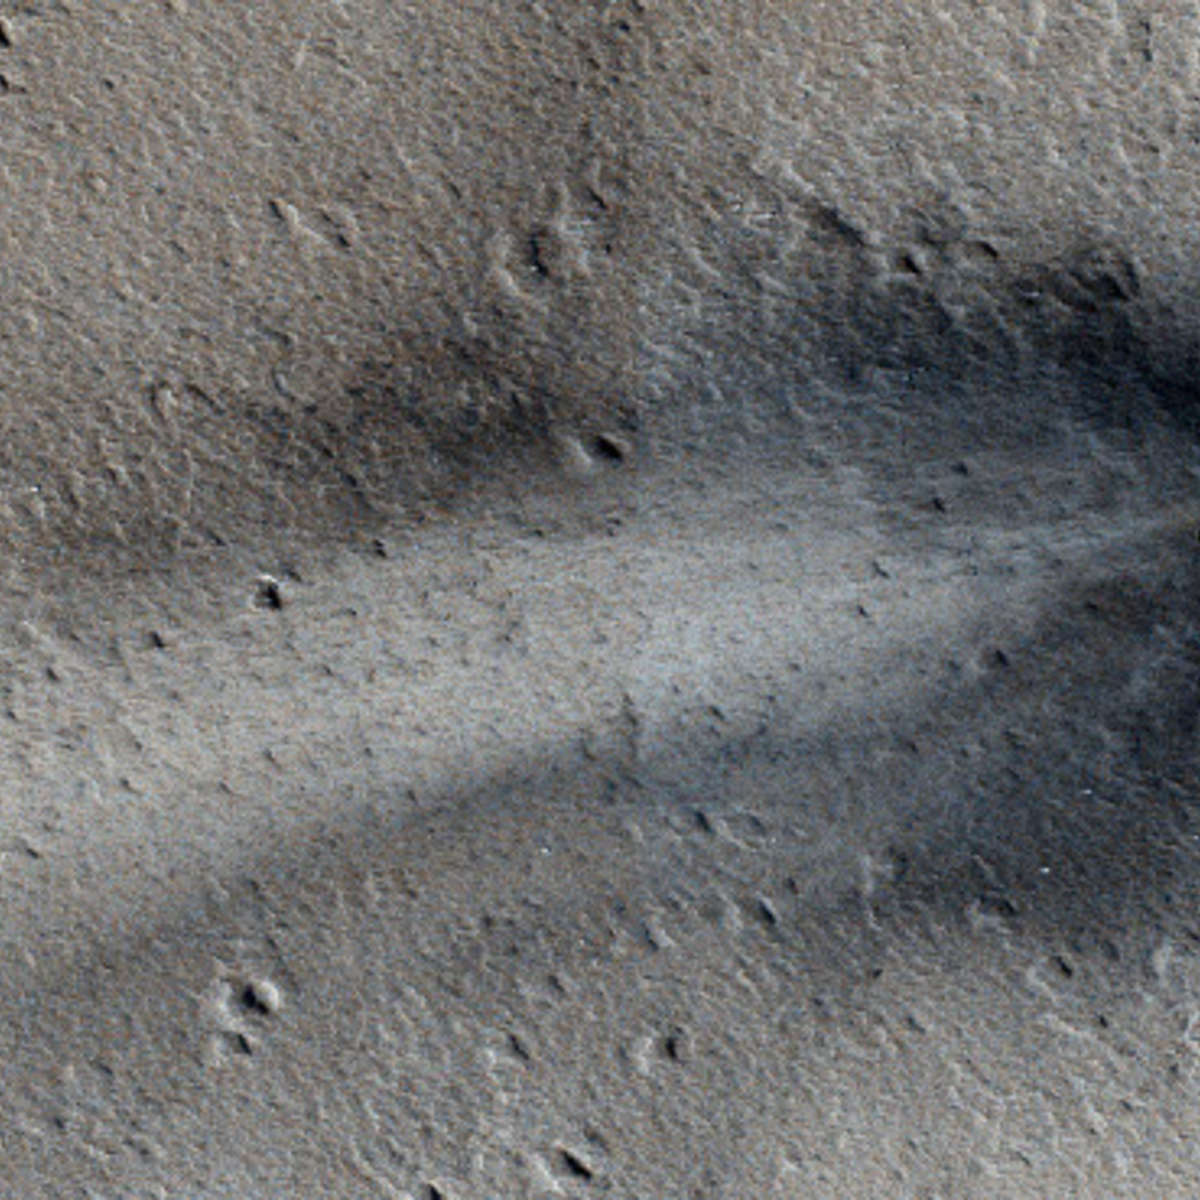 mro_newcrater_enhanced_0.jpg